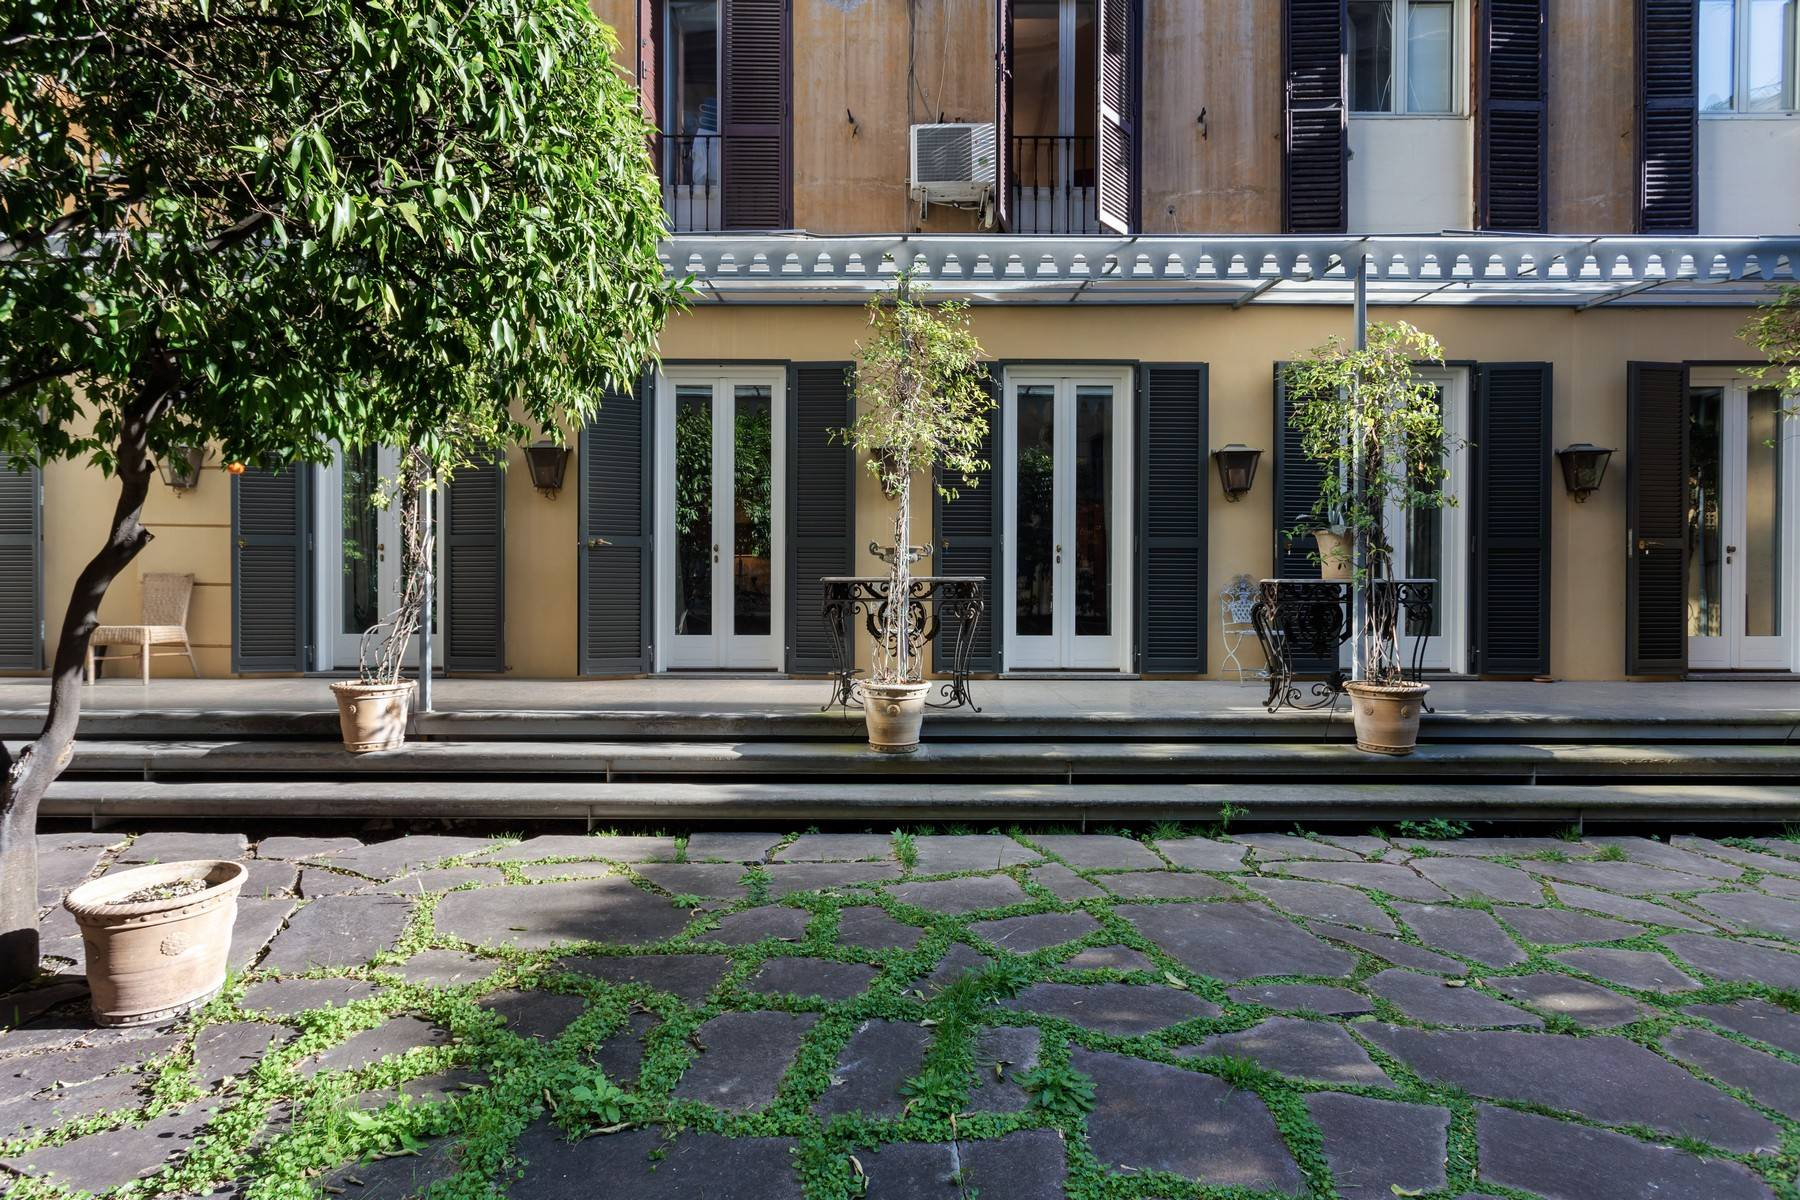 Apartments 为 出租 在 Charming apartment with garden in the center of Rome 罗马, 罗马 意大利